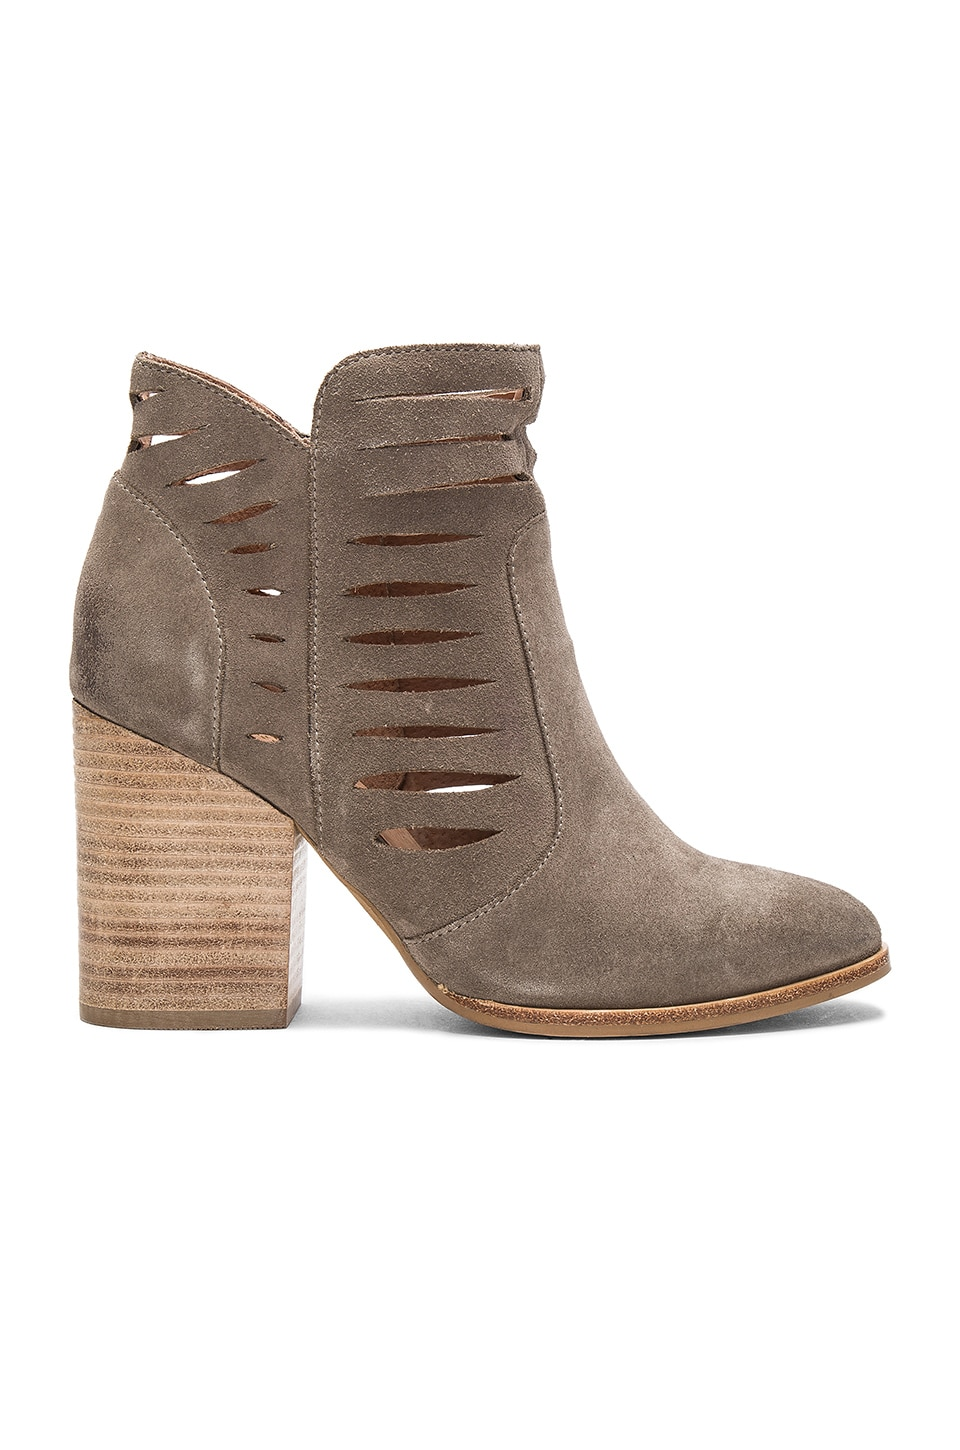 Seychelles Let's Go Crazy Booties in Taupe